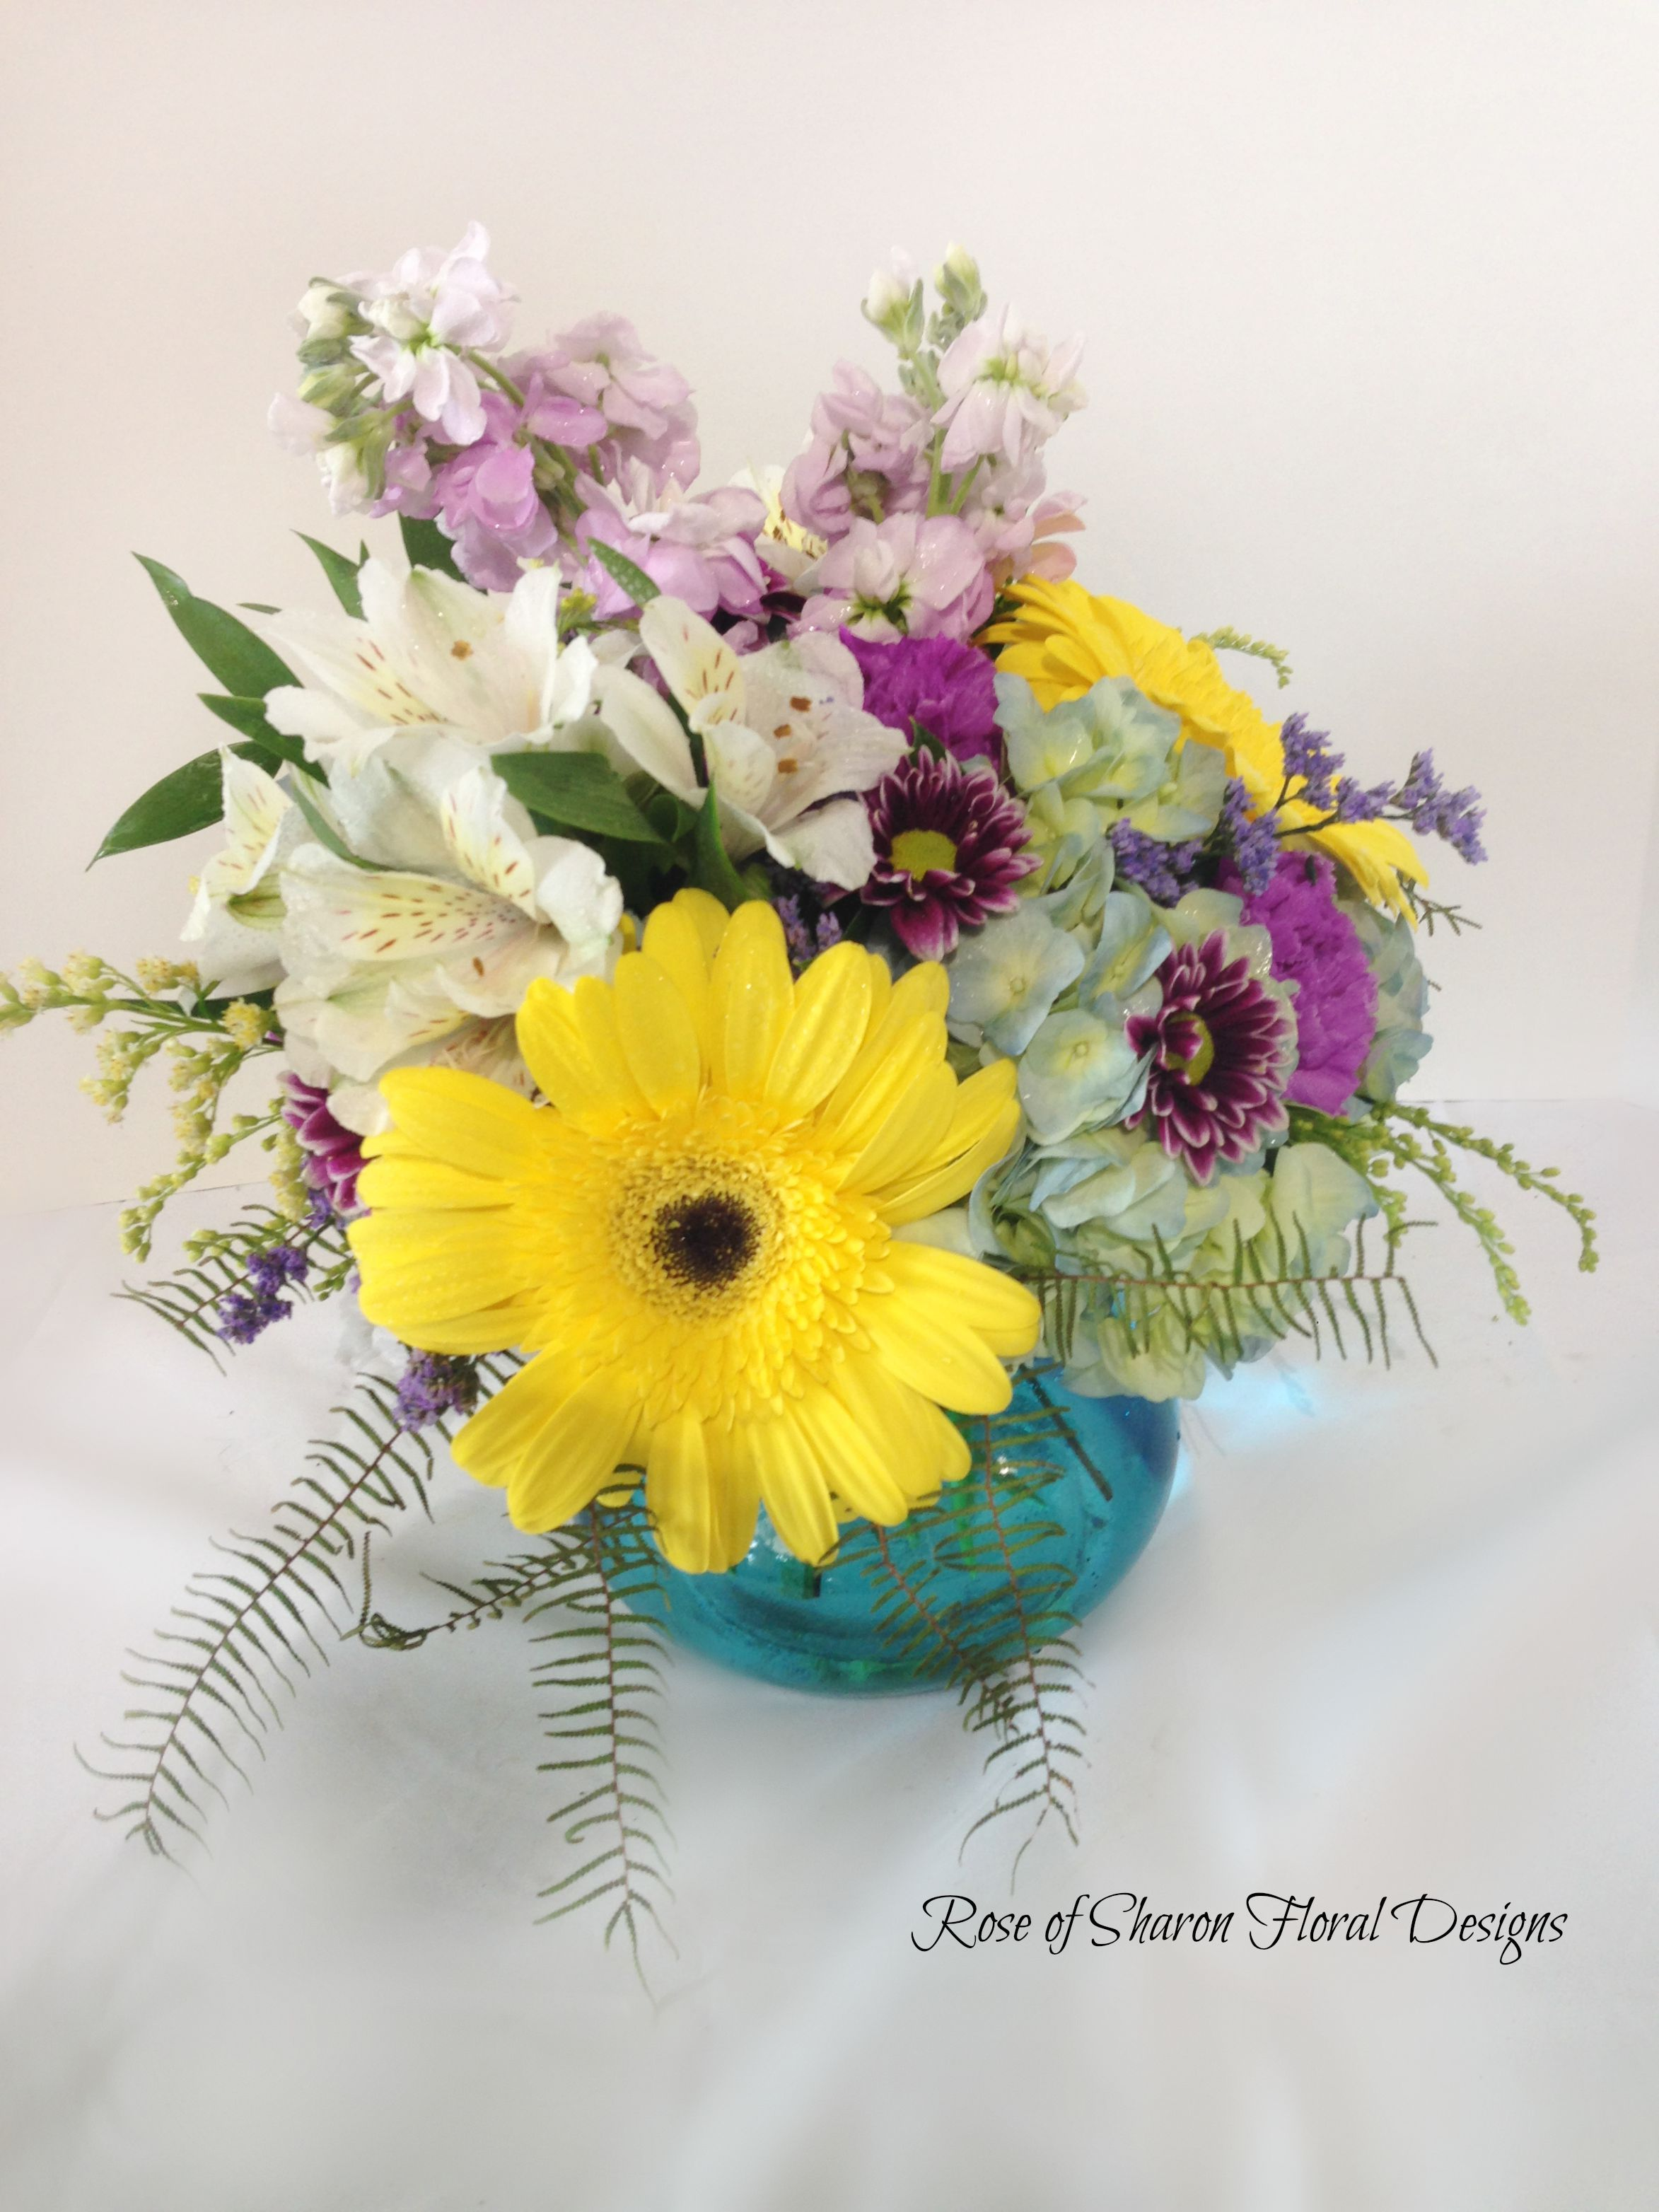 Rose of sharon floral designs yellow and purple garden arrangement rose of sharon floral designs yellow and purple garden arrangement withe daisies izmirmasajfo